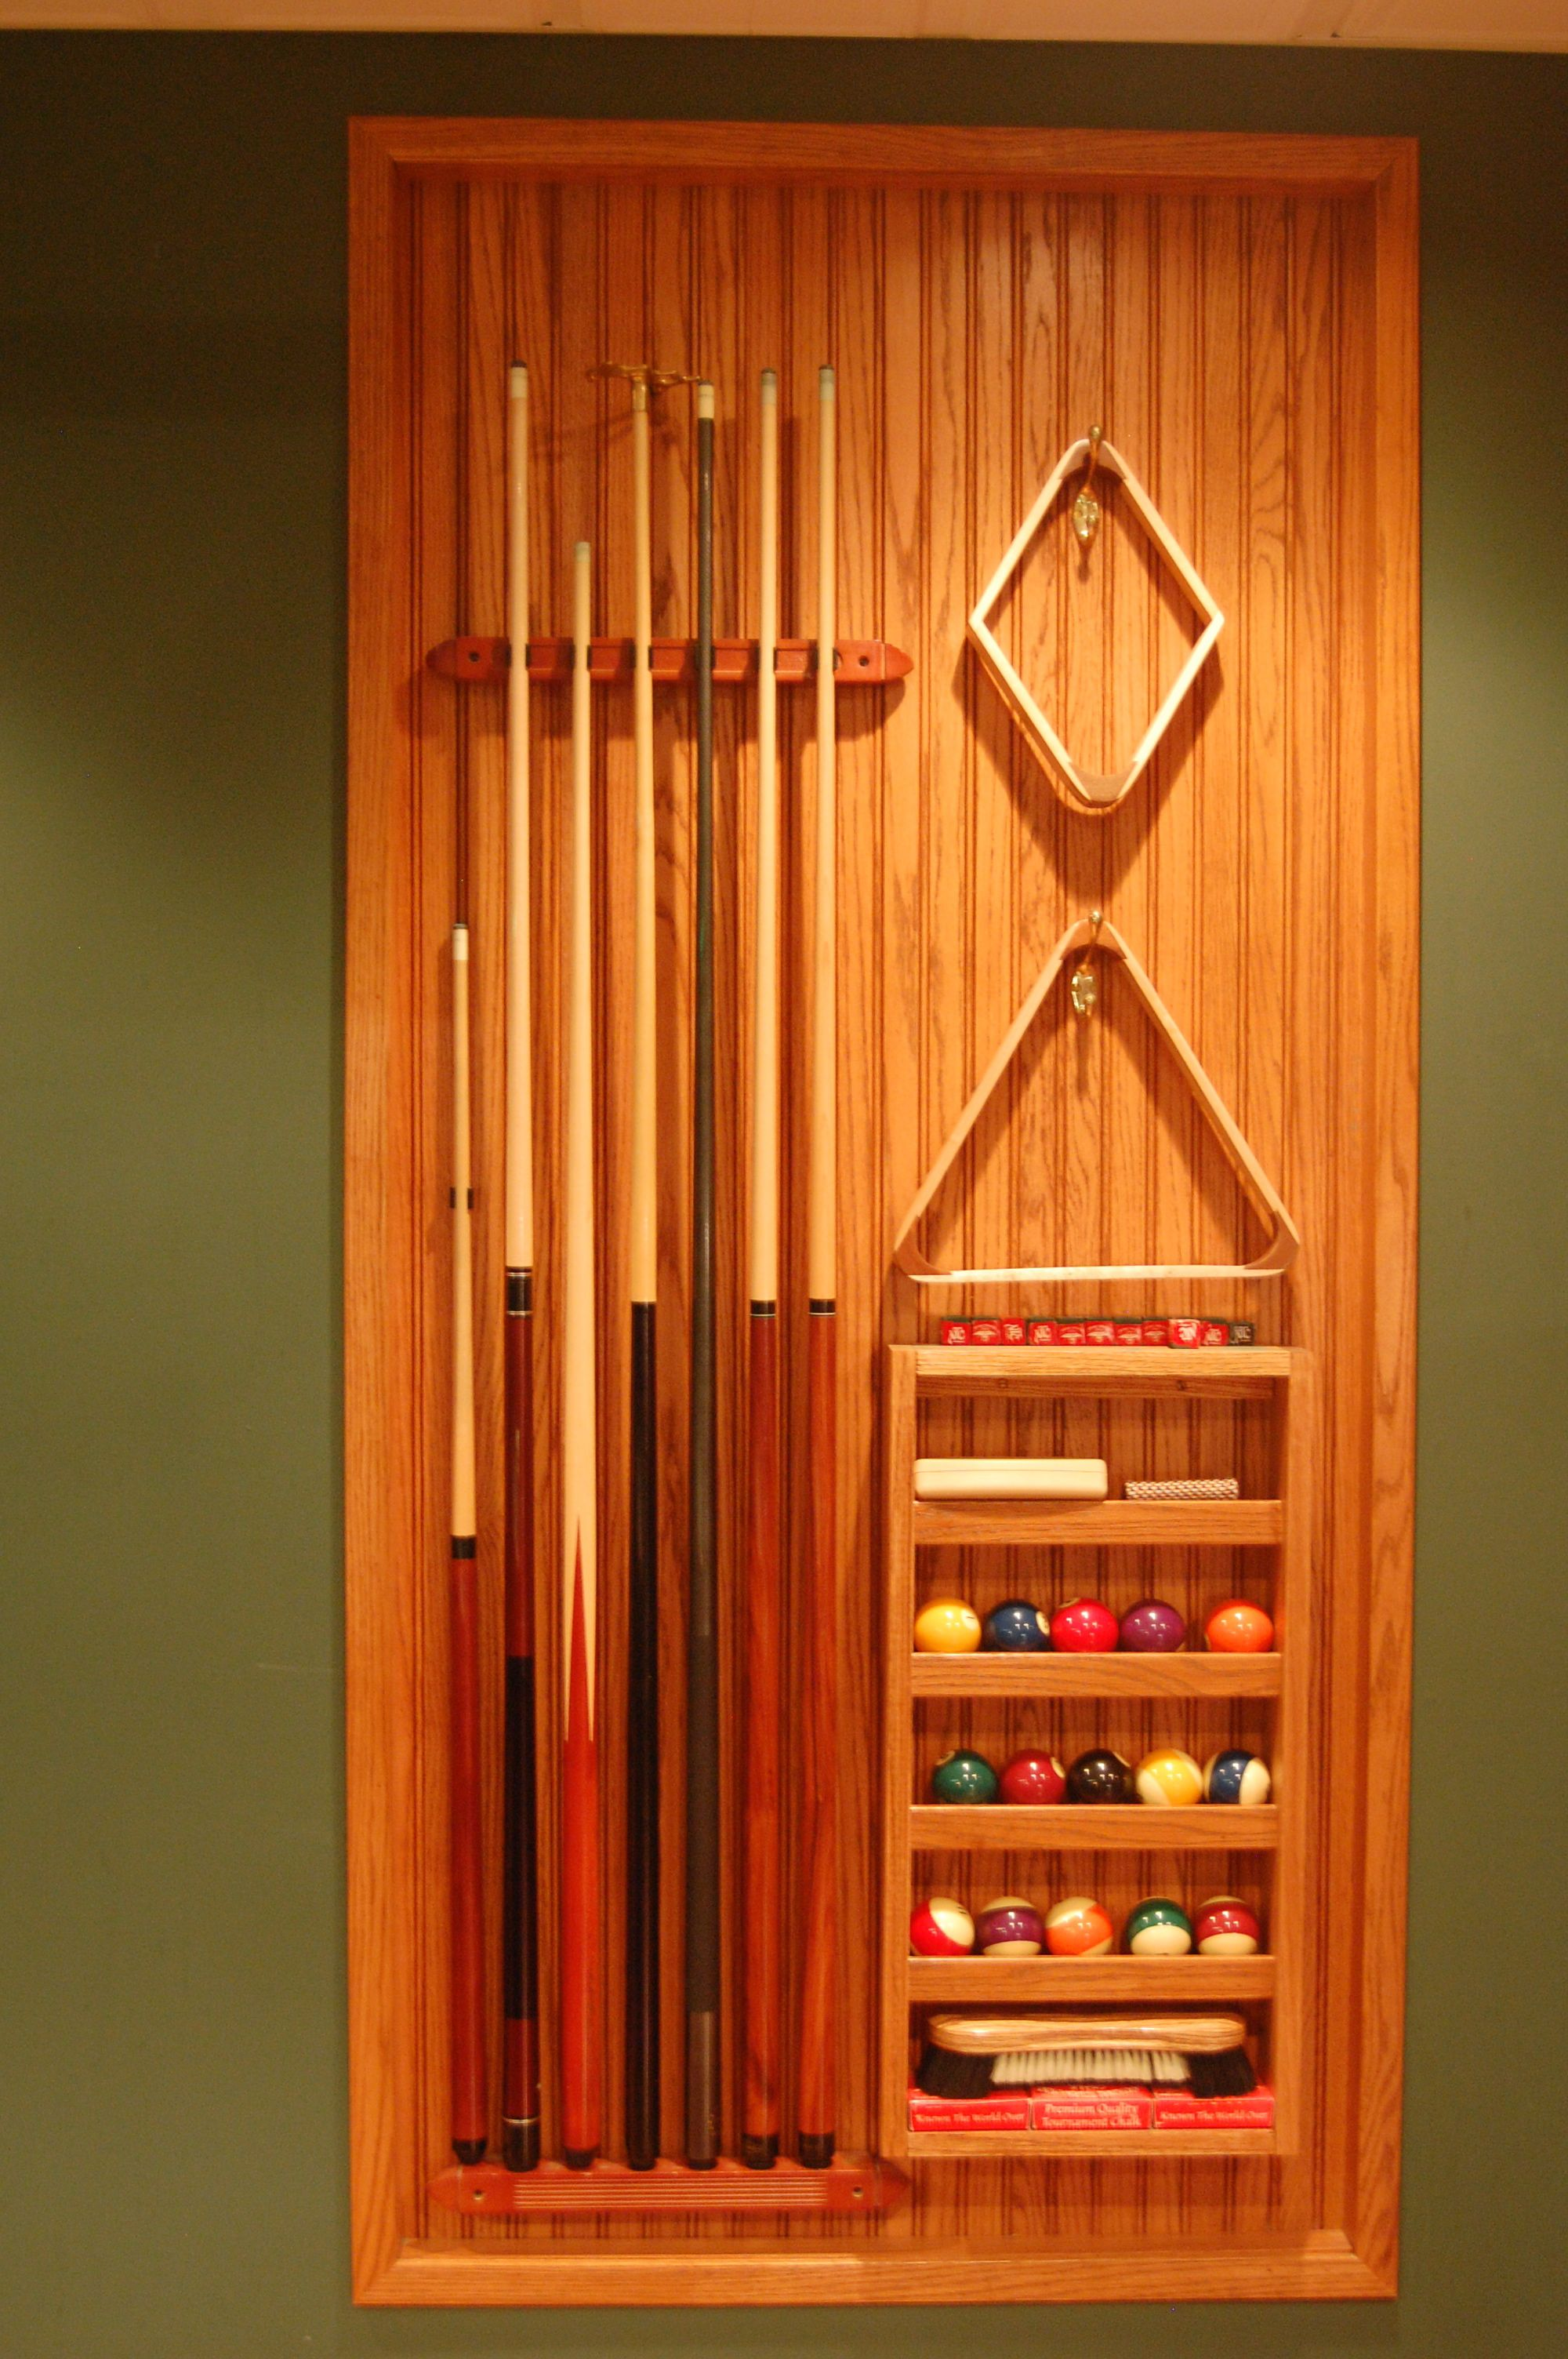 Cue Rack I Built From Oak Insets Into